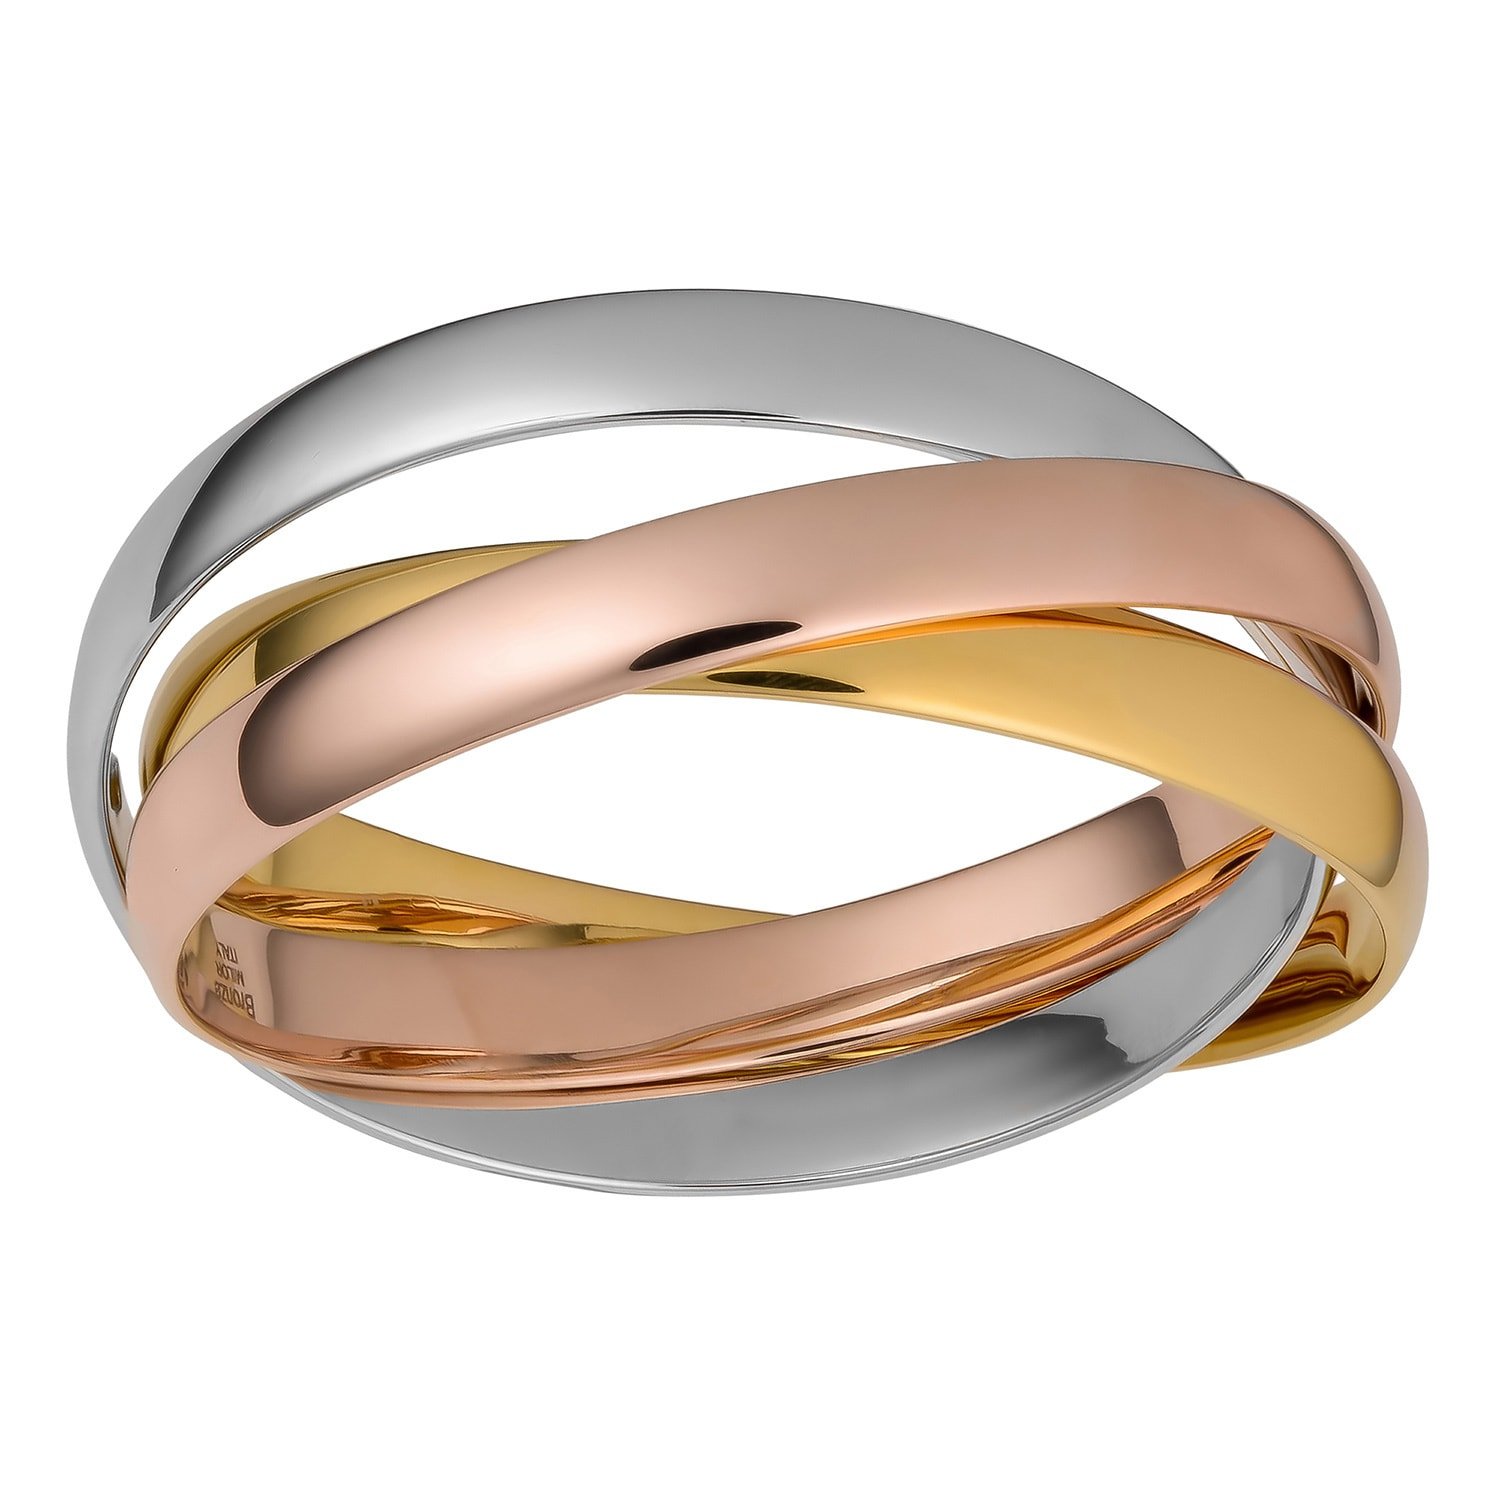 sparkle blushes dsc lac bronze bangles